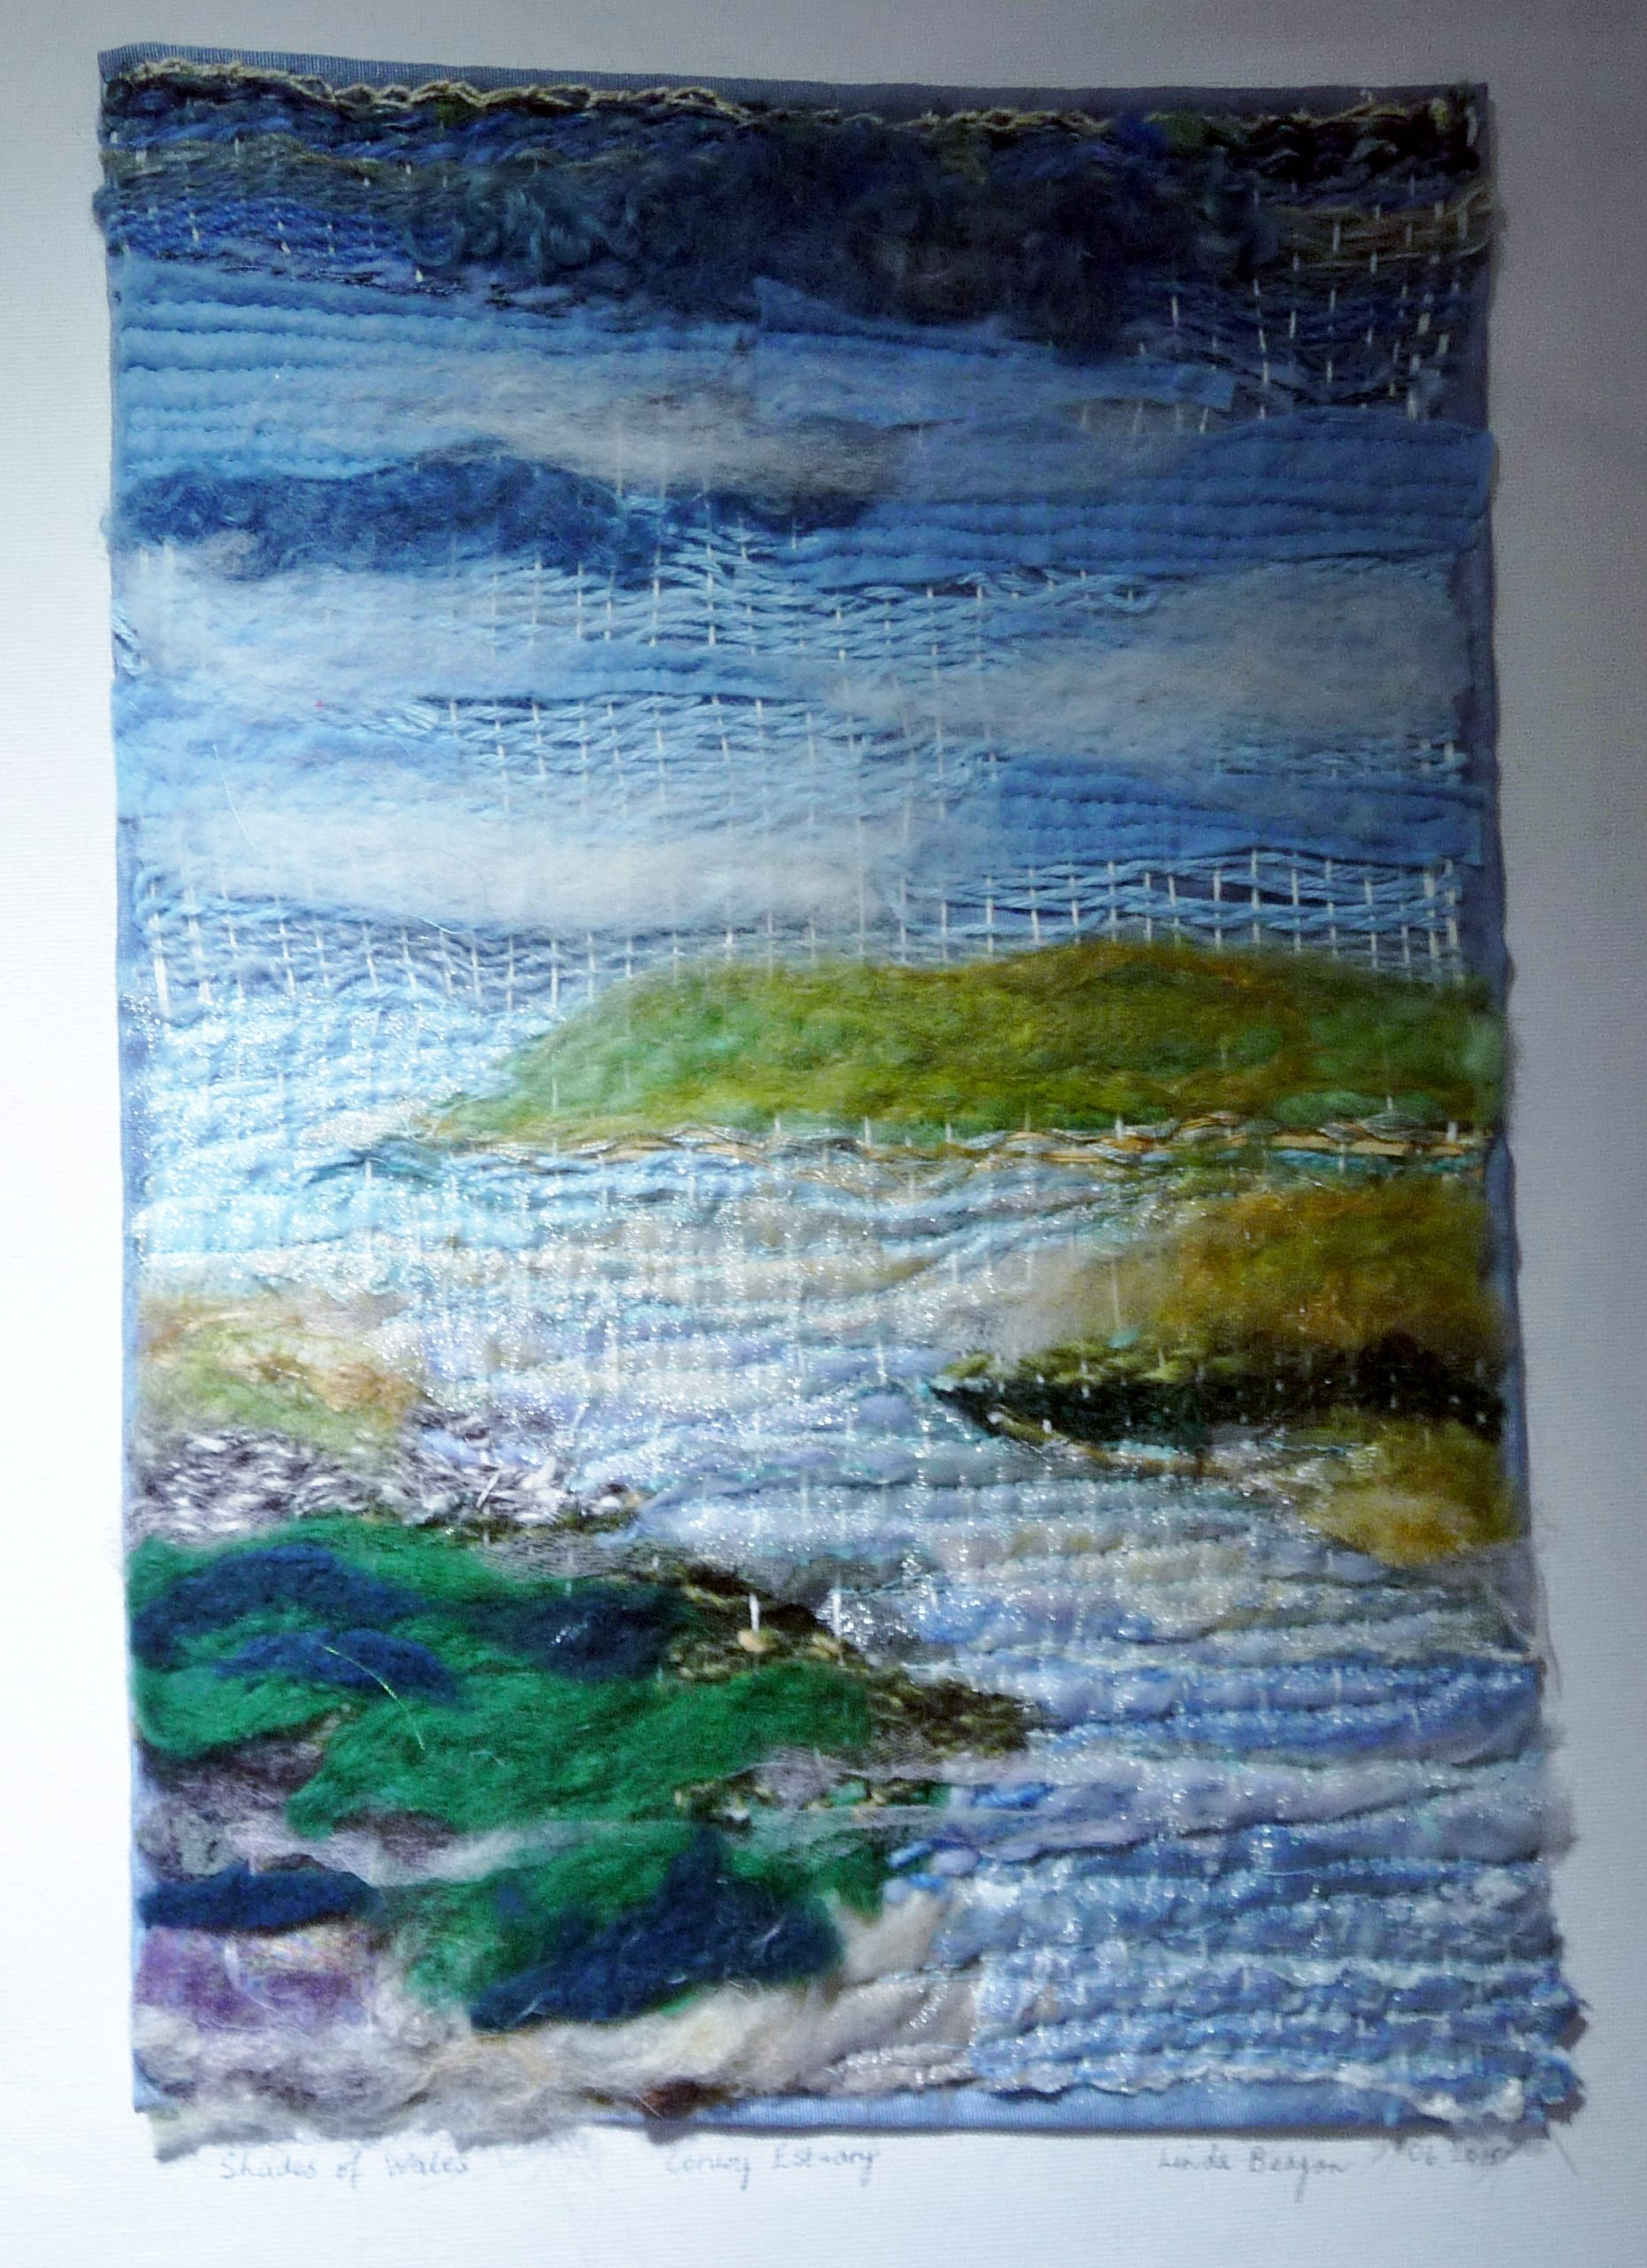 SHADES OF WALES by Linda Beagan, hand & machuned embroidered woven with fbric & thread